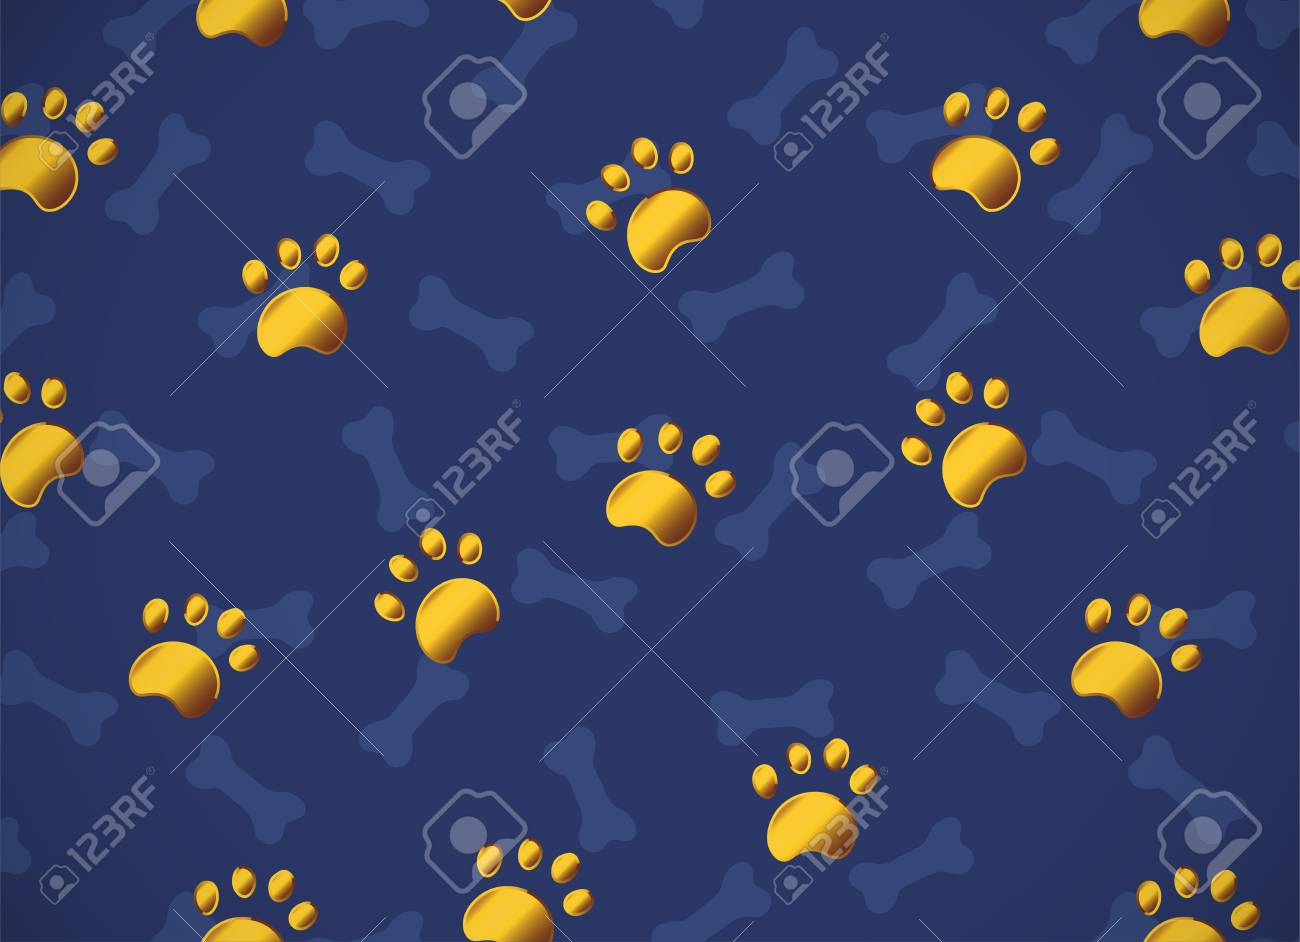 Pattern With Gold Or Yellow Metallic Paws On Dark Blue Background Bones